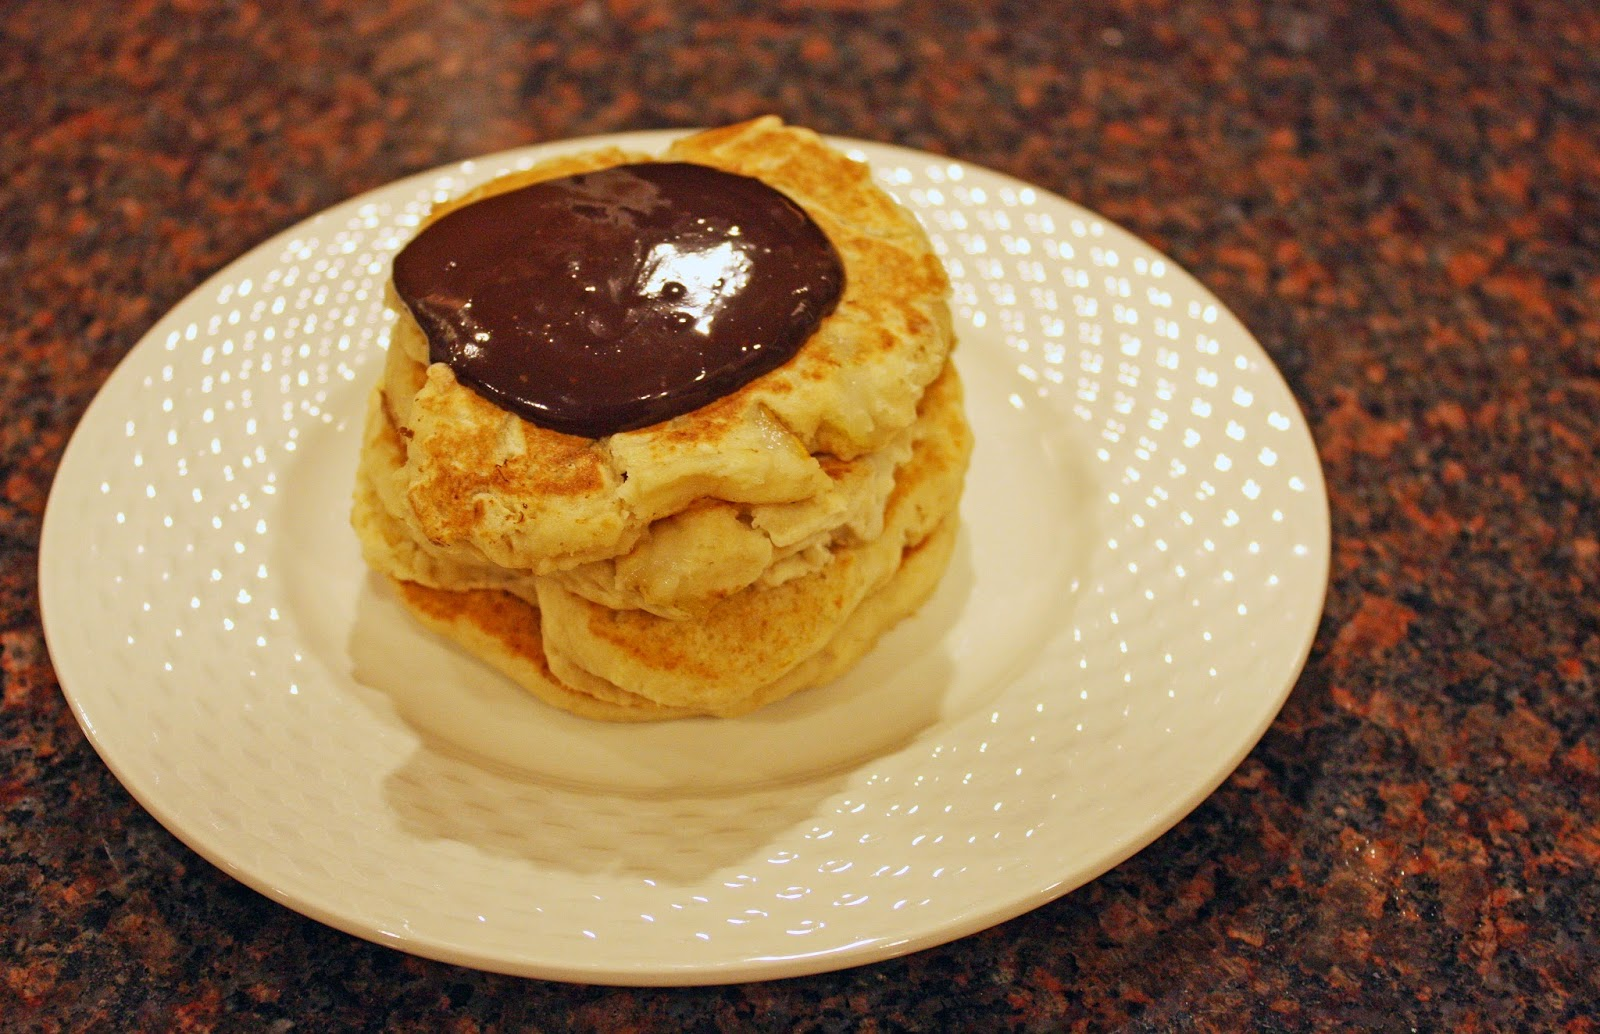 vegan ginger pear pancakes with chocolate syrup